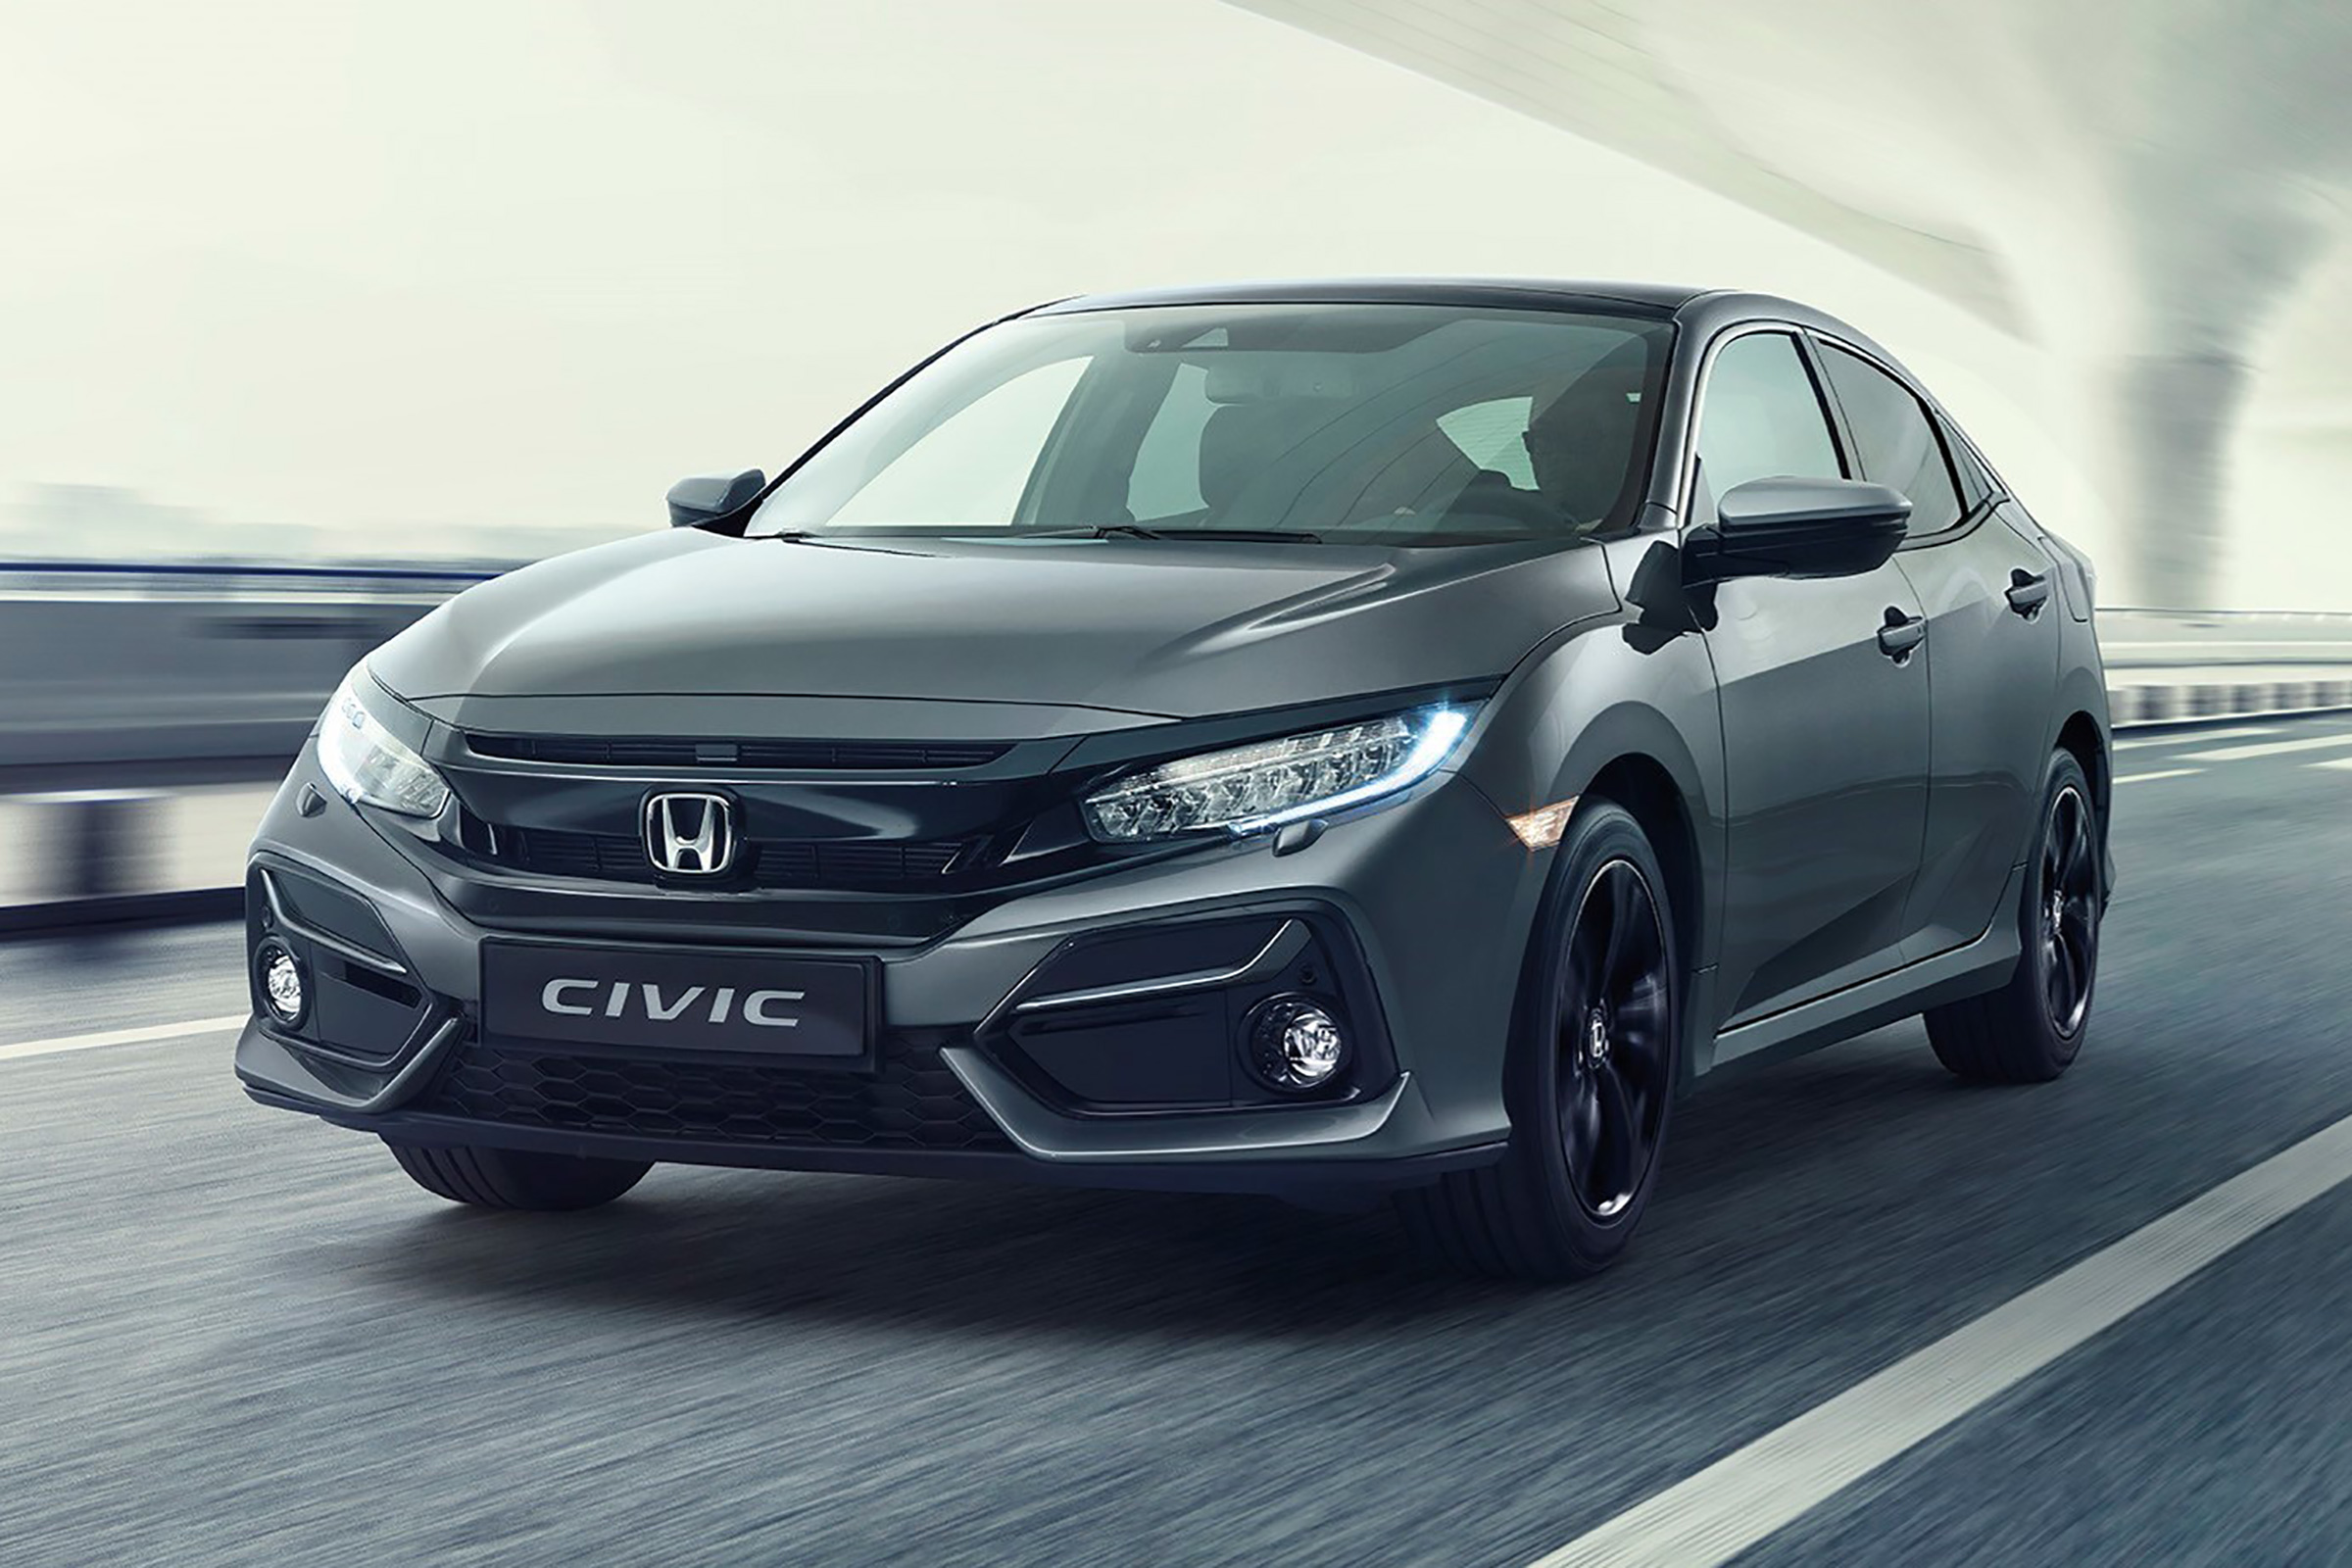 Refreshed Honda Civic Revealed For 2020 Auto Express